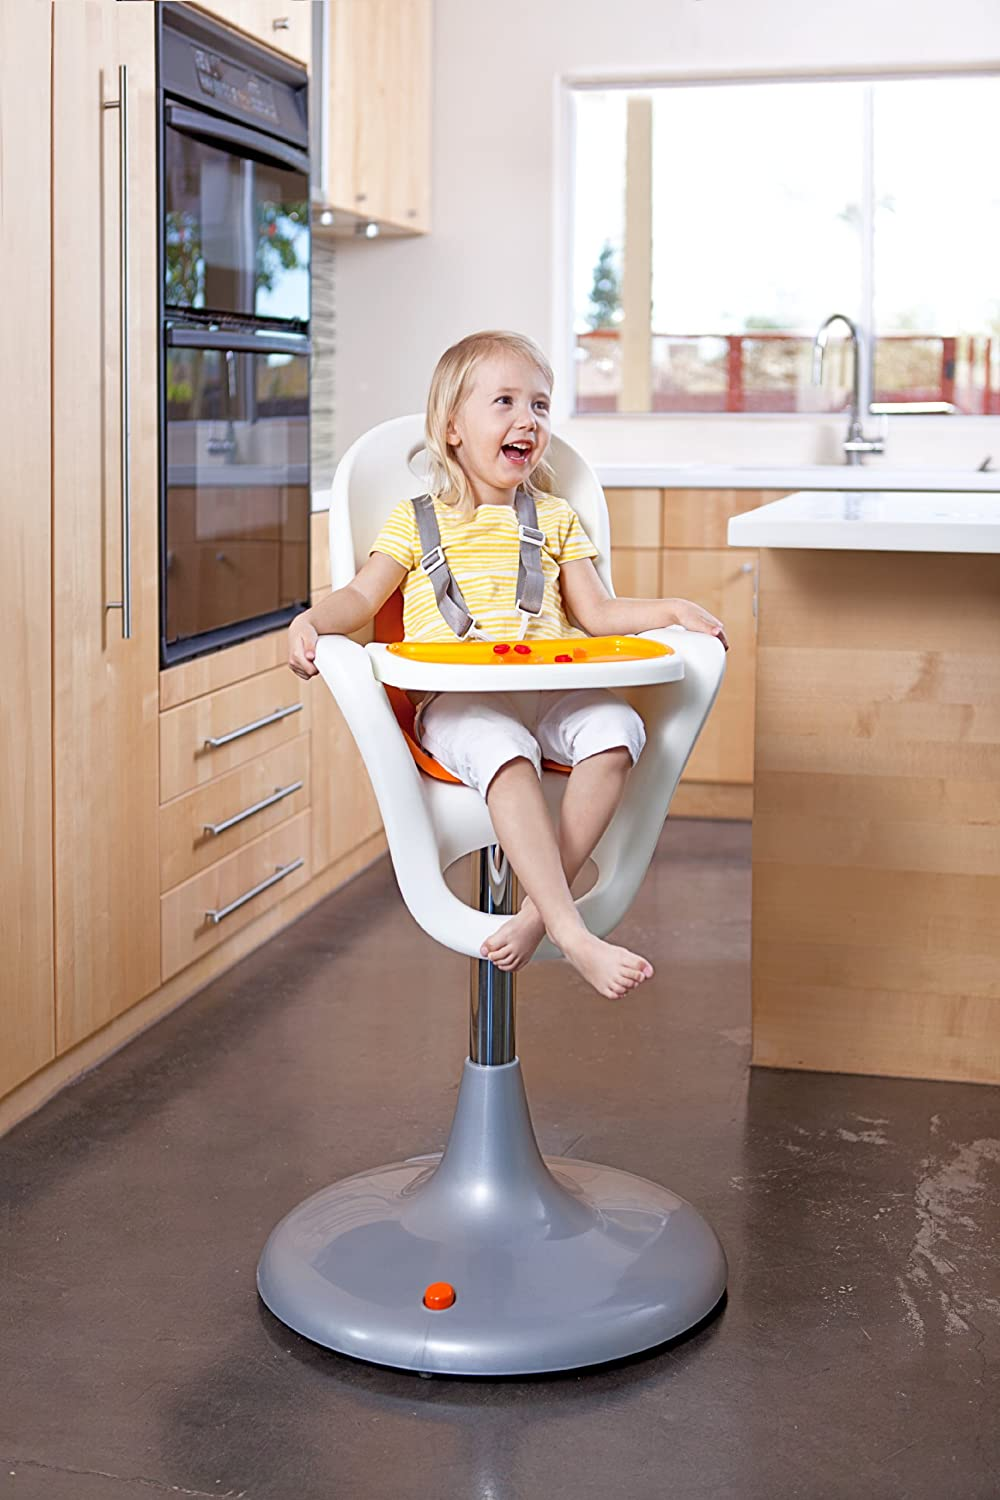 amazoncom  boon flair pedestal highchair with pneumatic lift  - amazoncom  boon flair pedestal highchair with pneumatic lift whiteorang childrens highchairs  baby